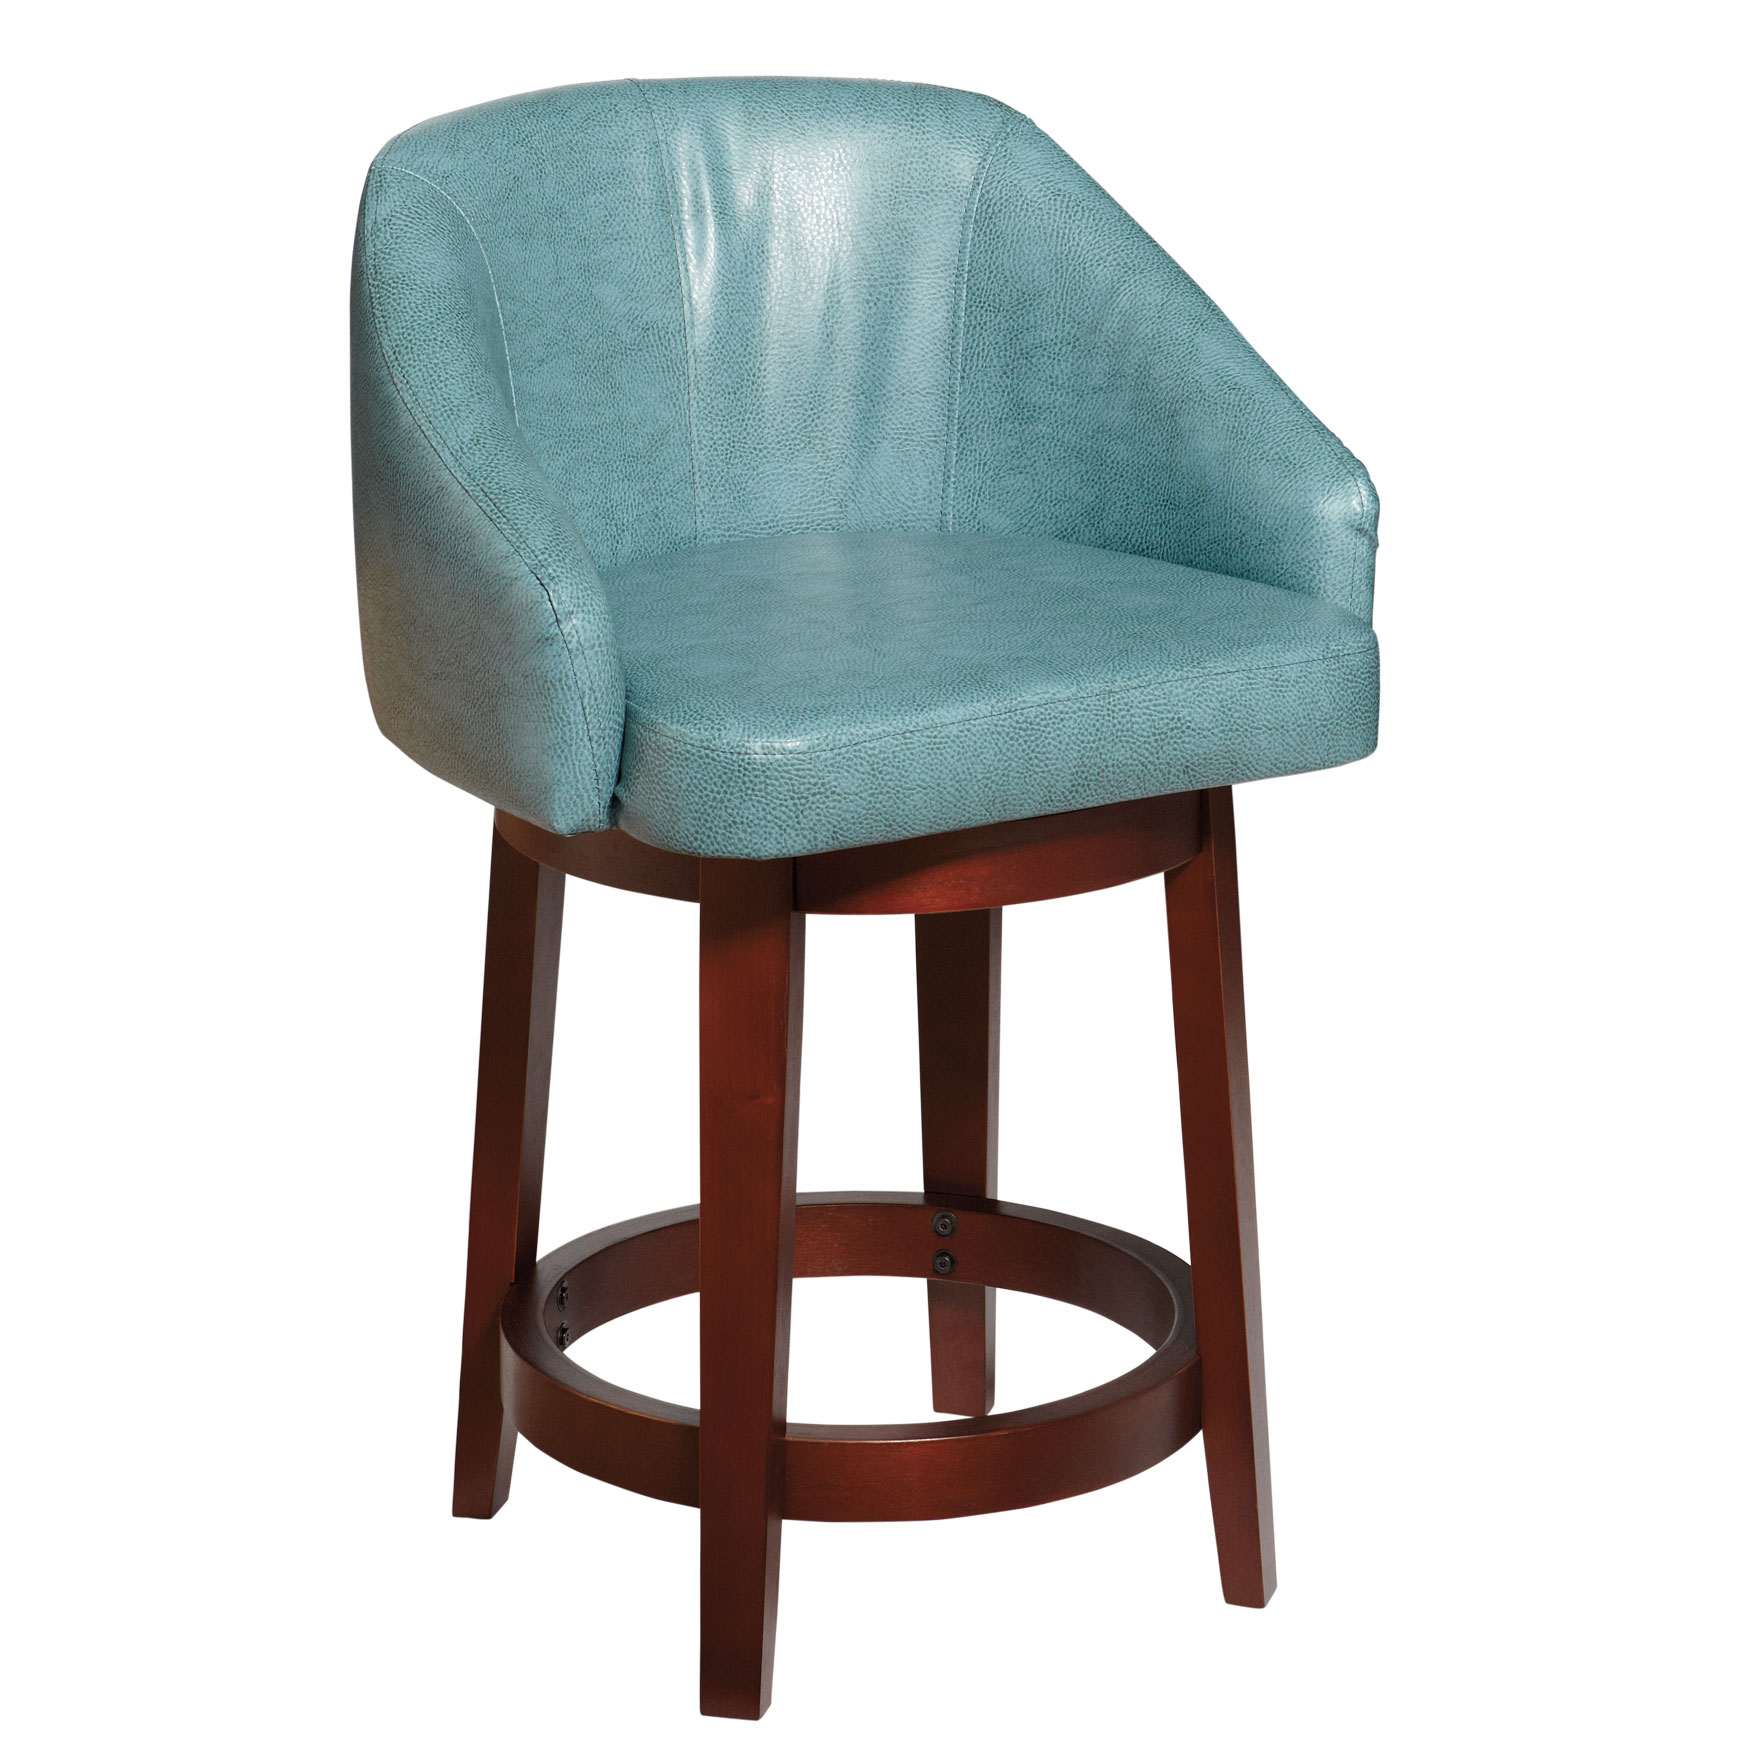 Nina Swivel Counter Stool,